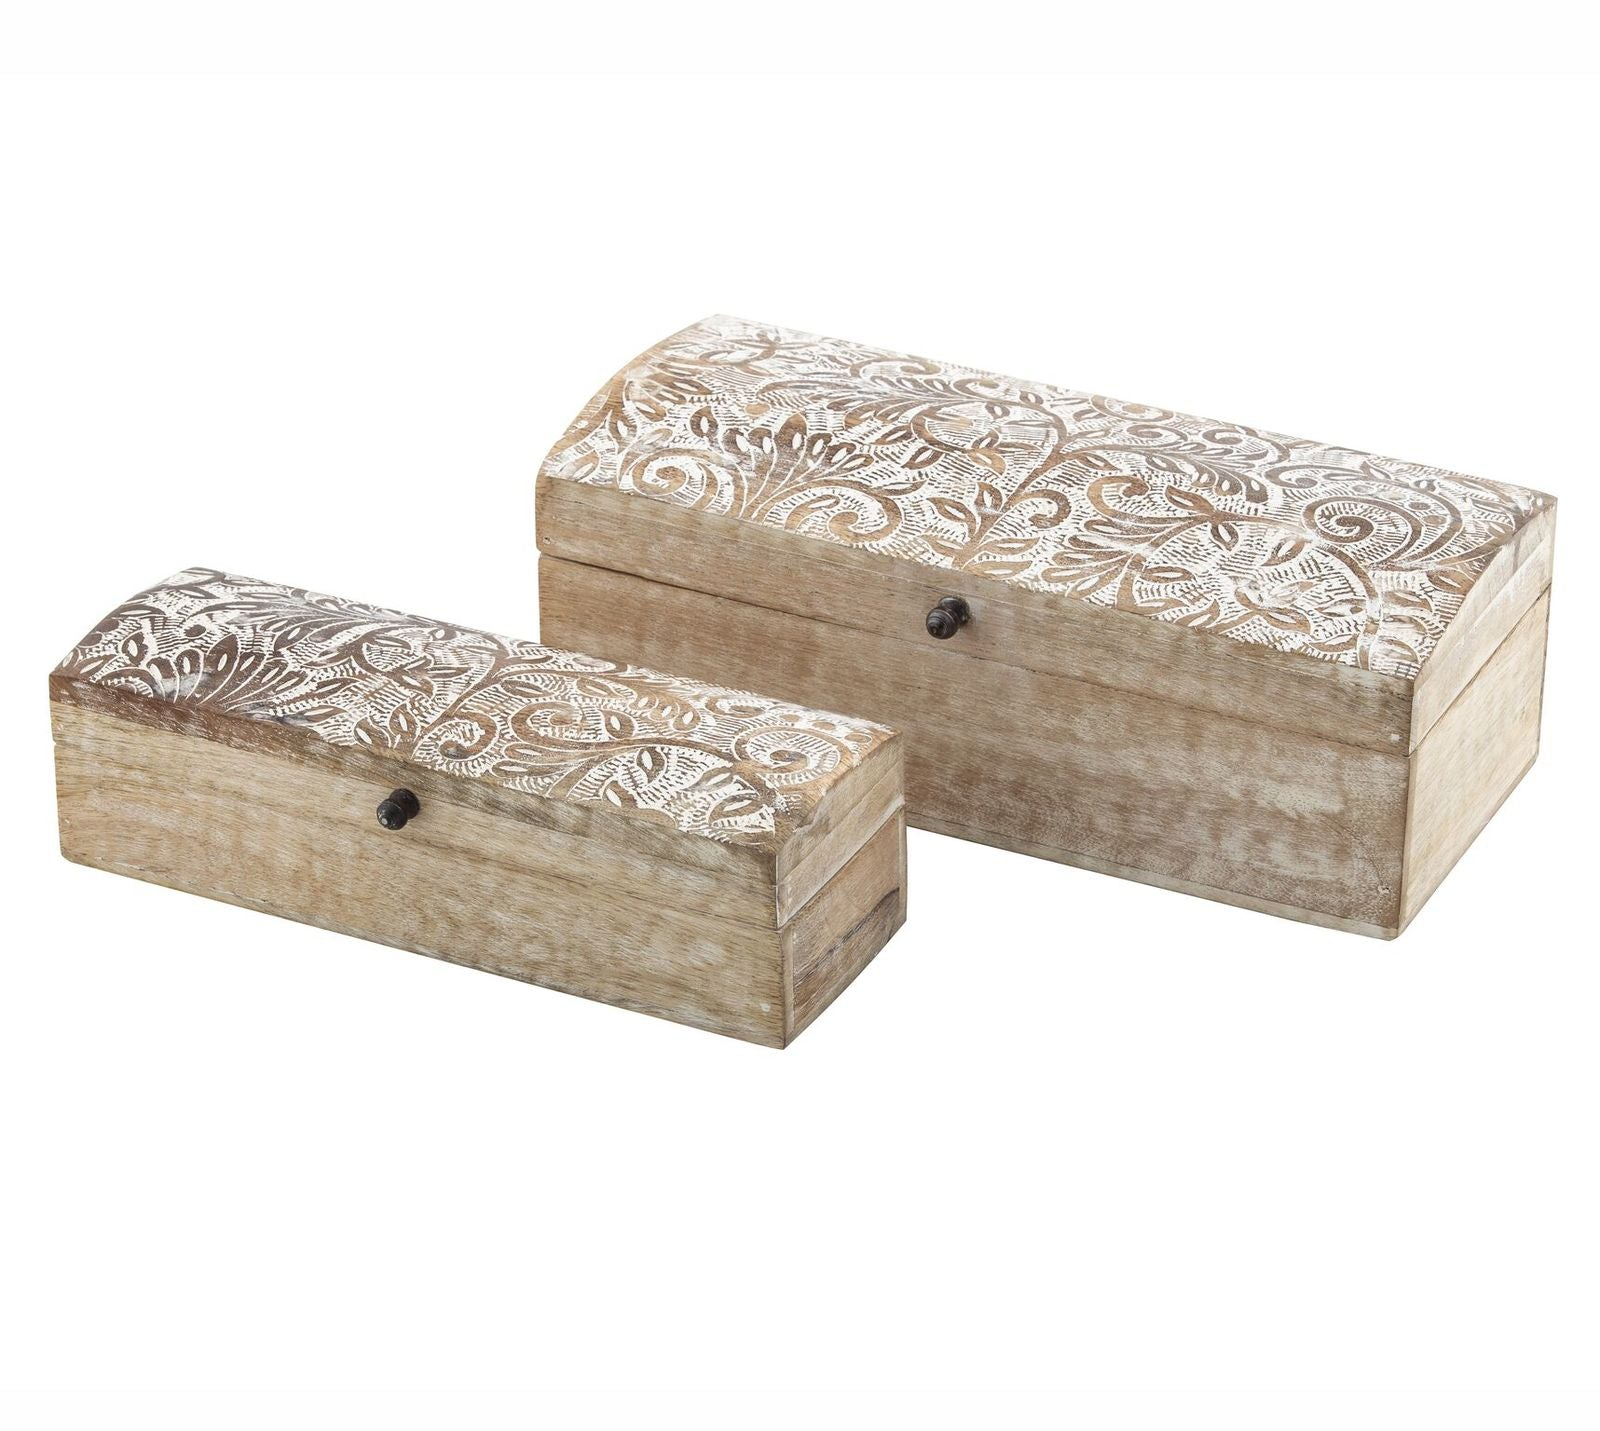 Amalfi: Ishani Deco Box (Set of 2)